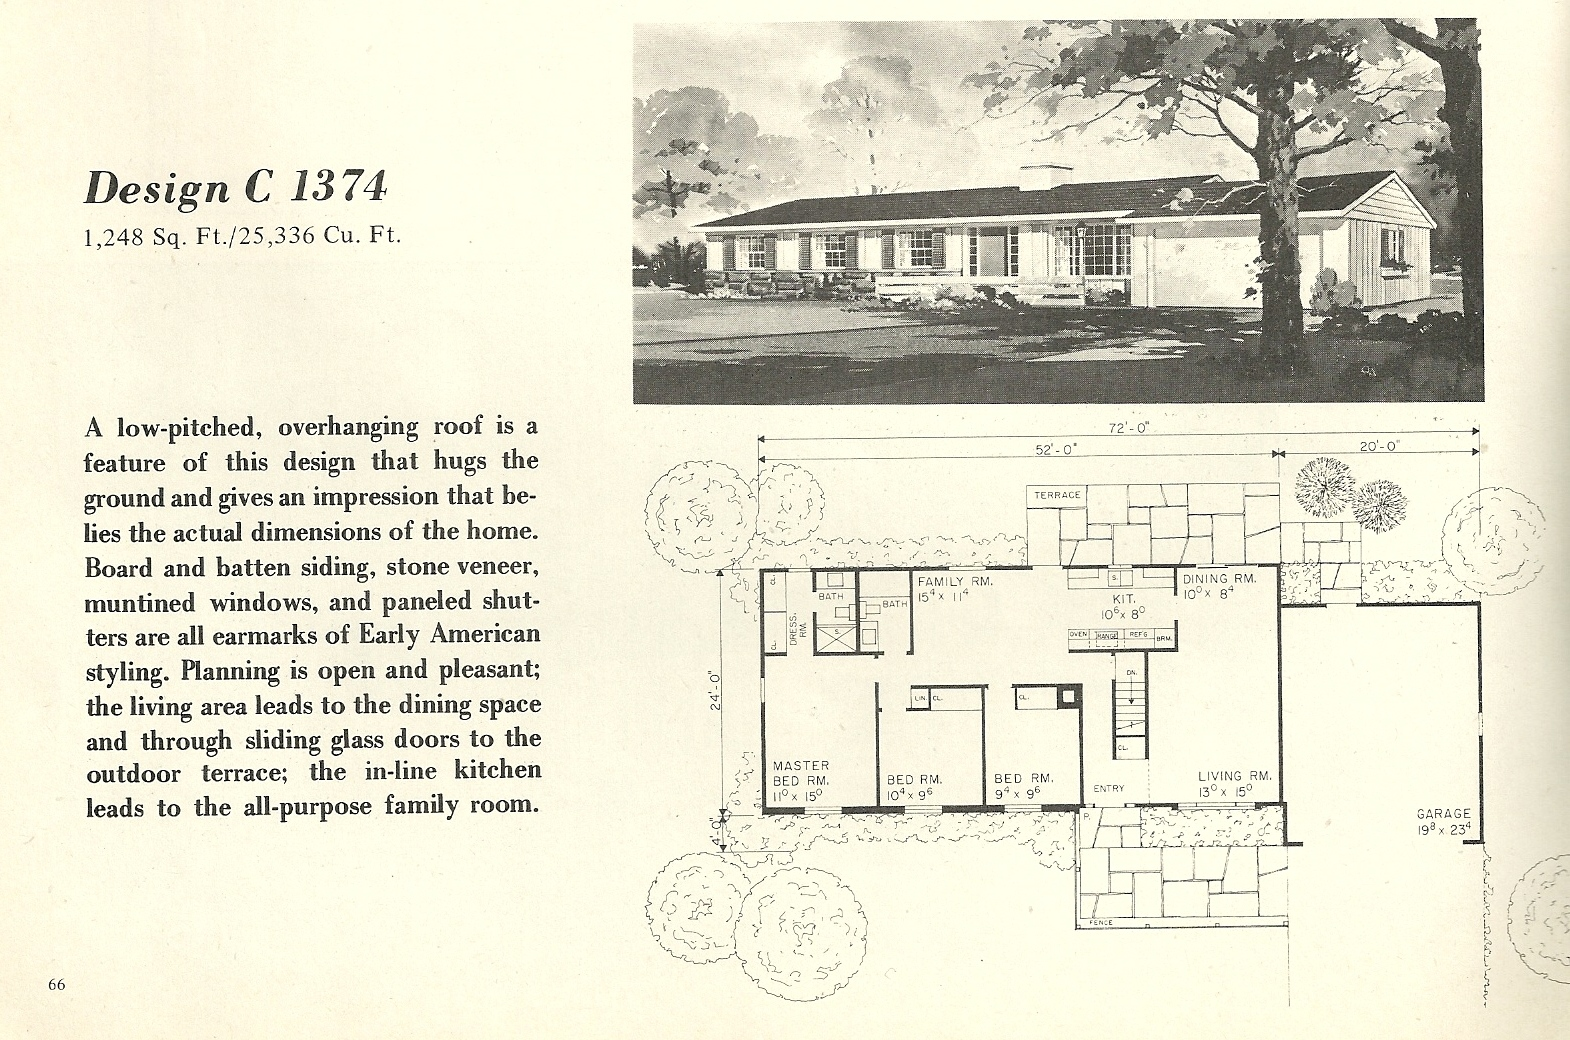 Vintage house plans 1374 antique alter ego for Vintage home plans